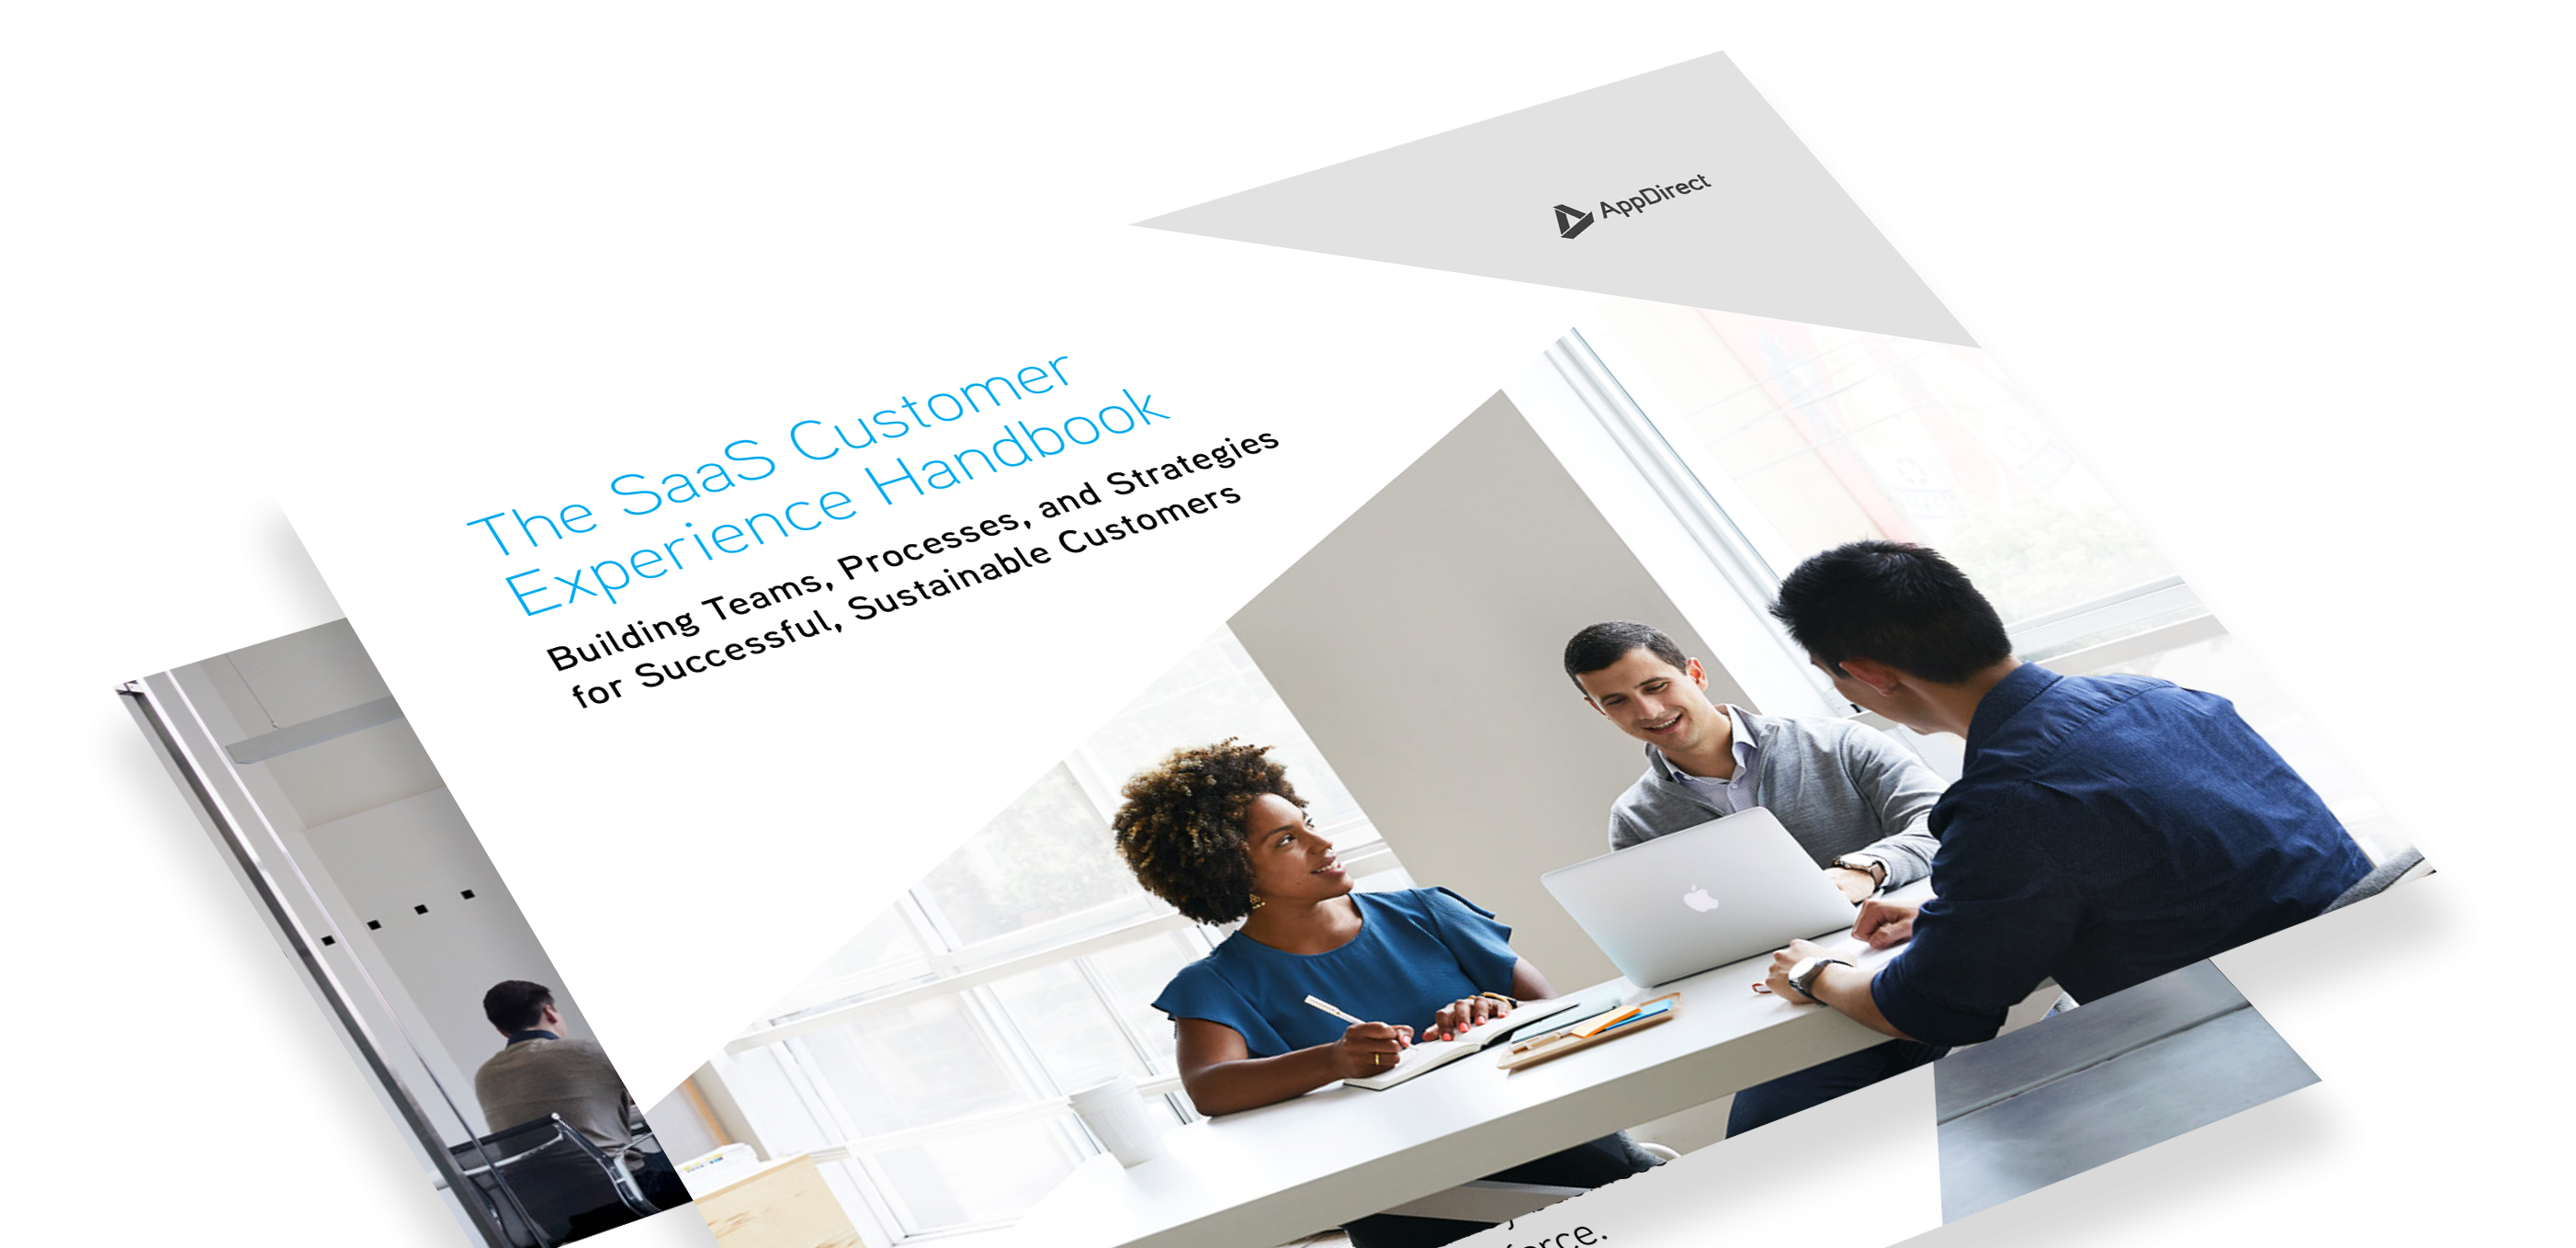 The SaaS Customer Experience Handbook